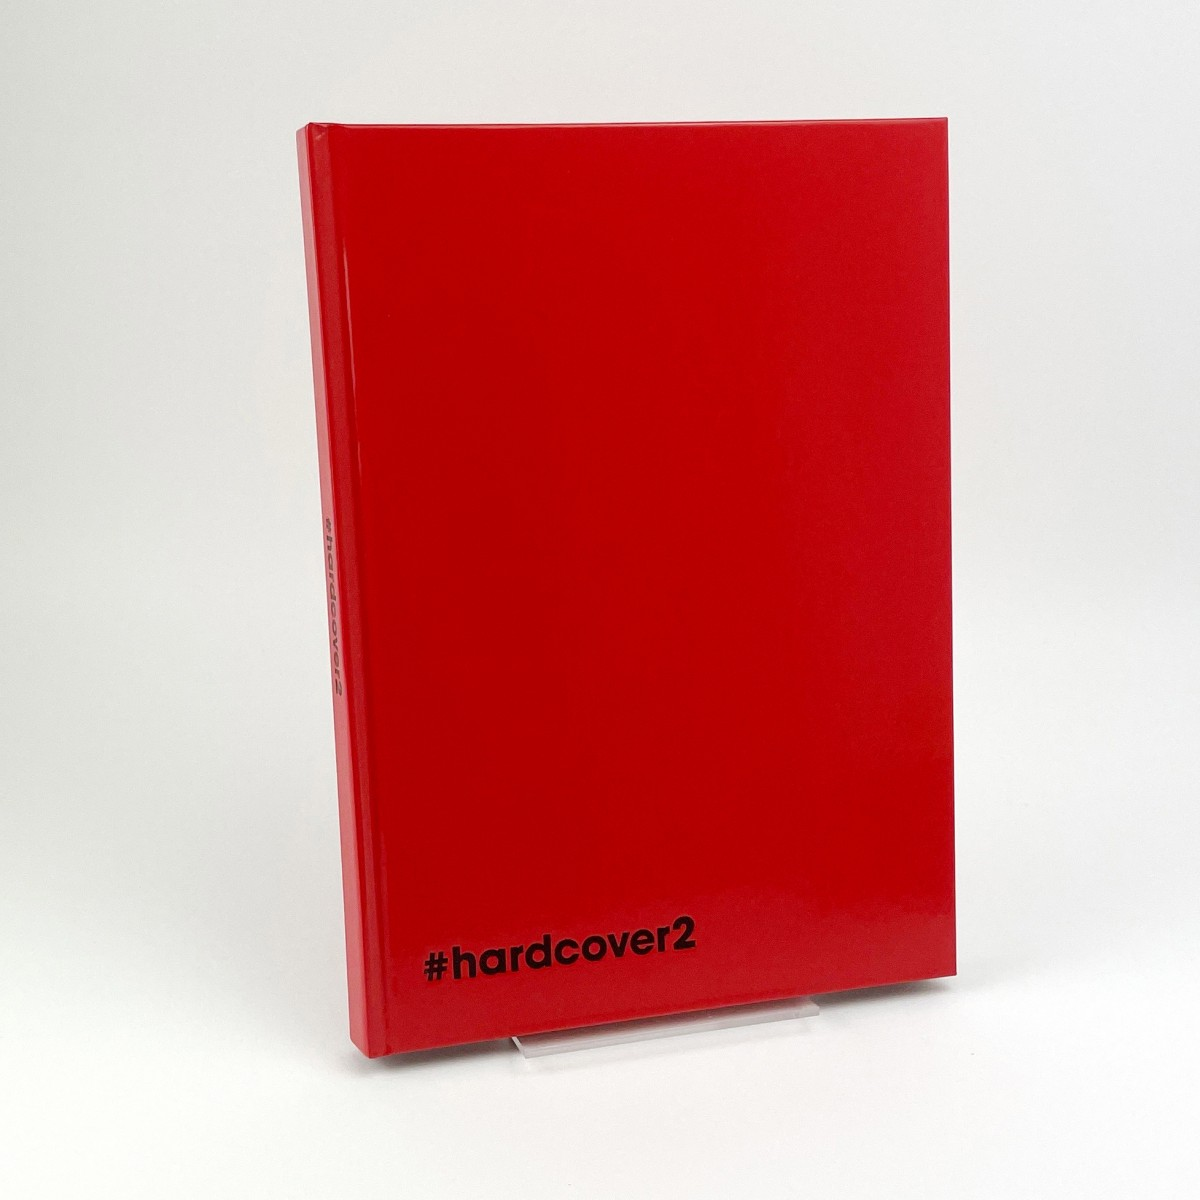 Hardcover 2 - Collectif